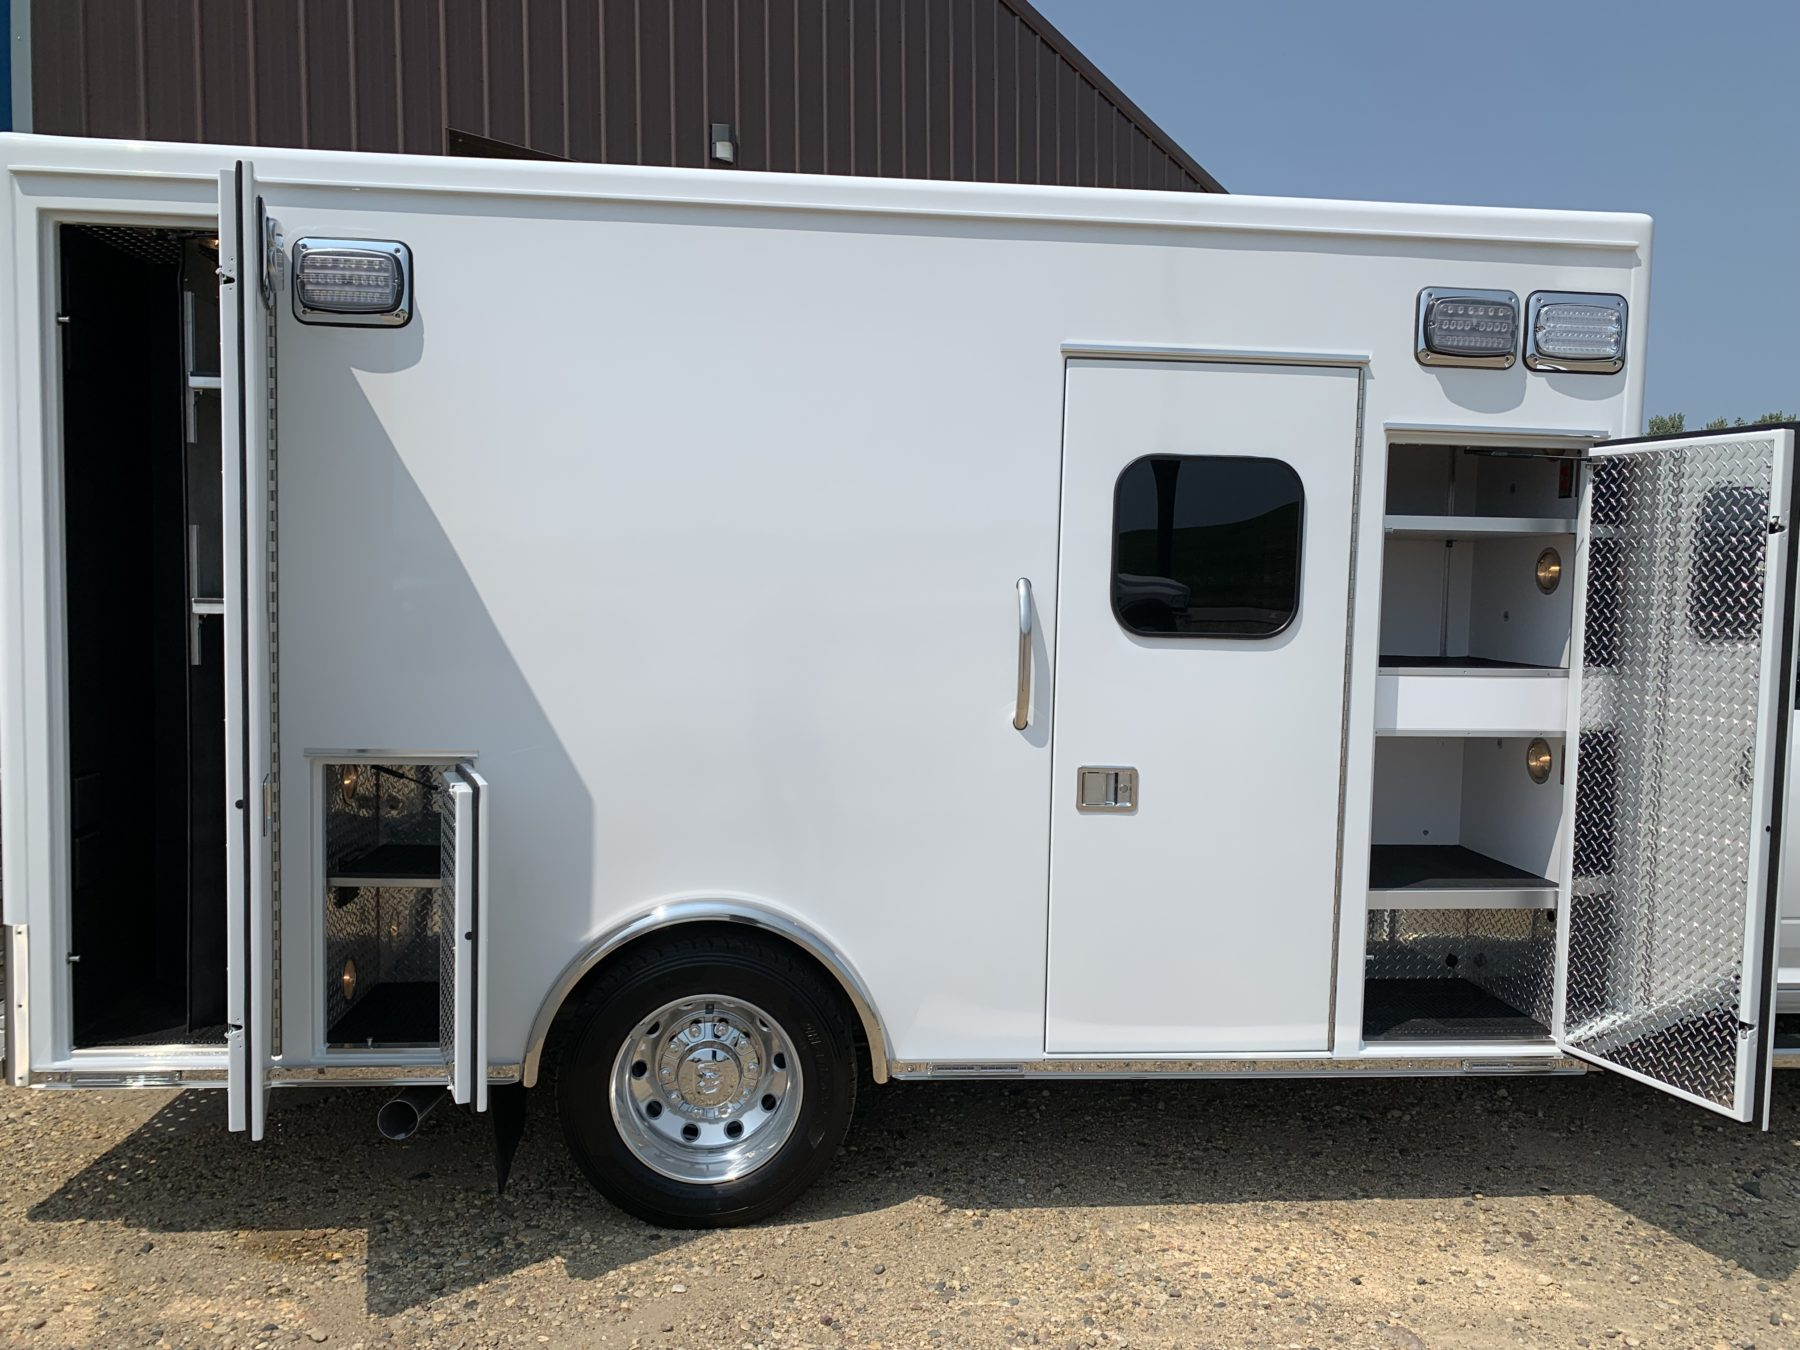 2021 Ram 4500 4x4 Heavy Duty Ambulance For Sale – Picture 10